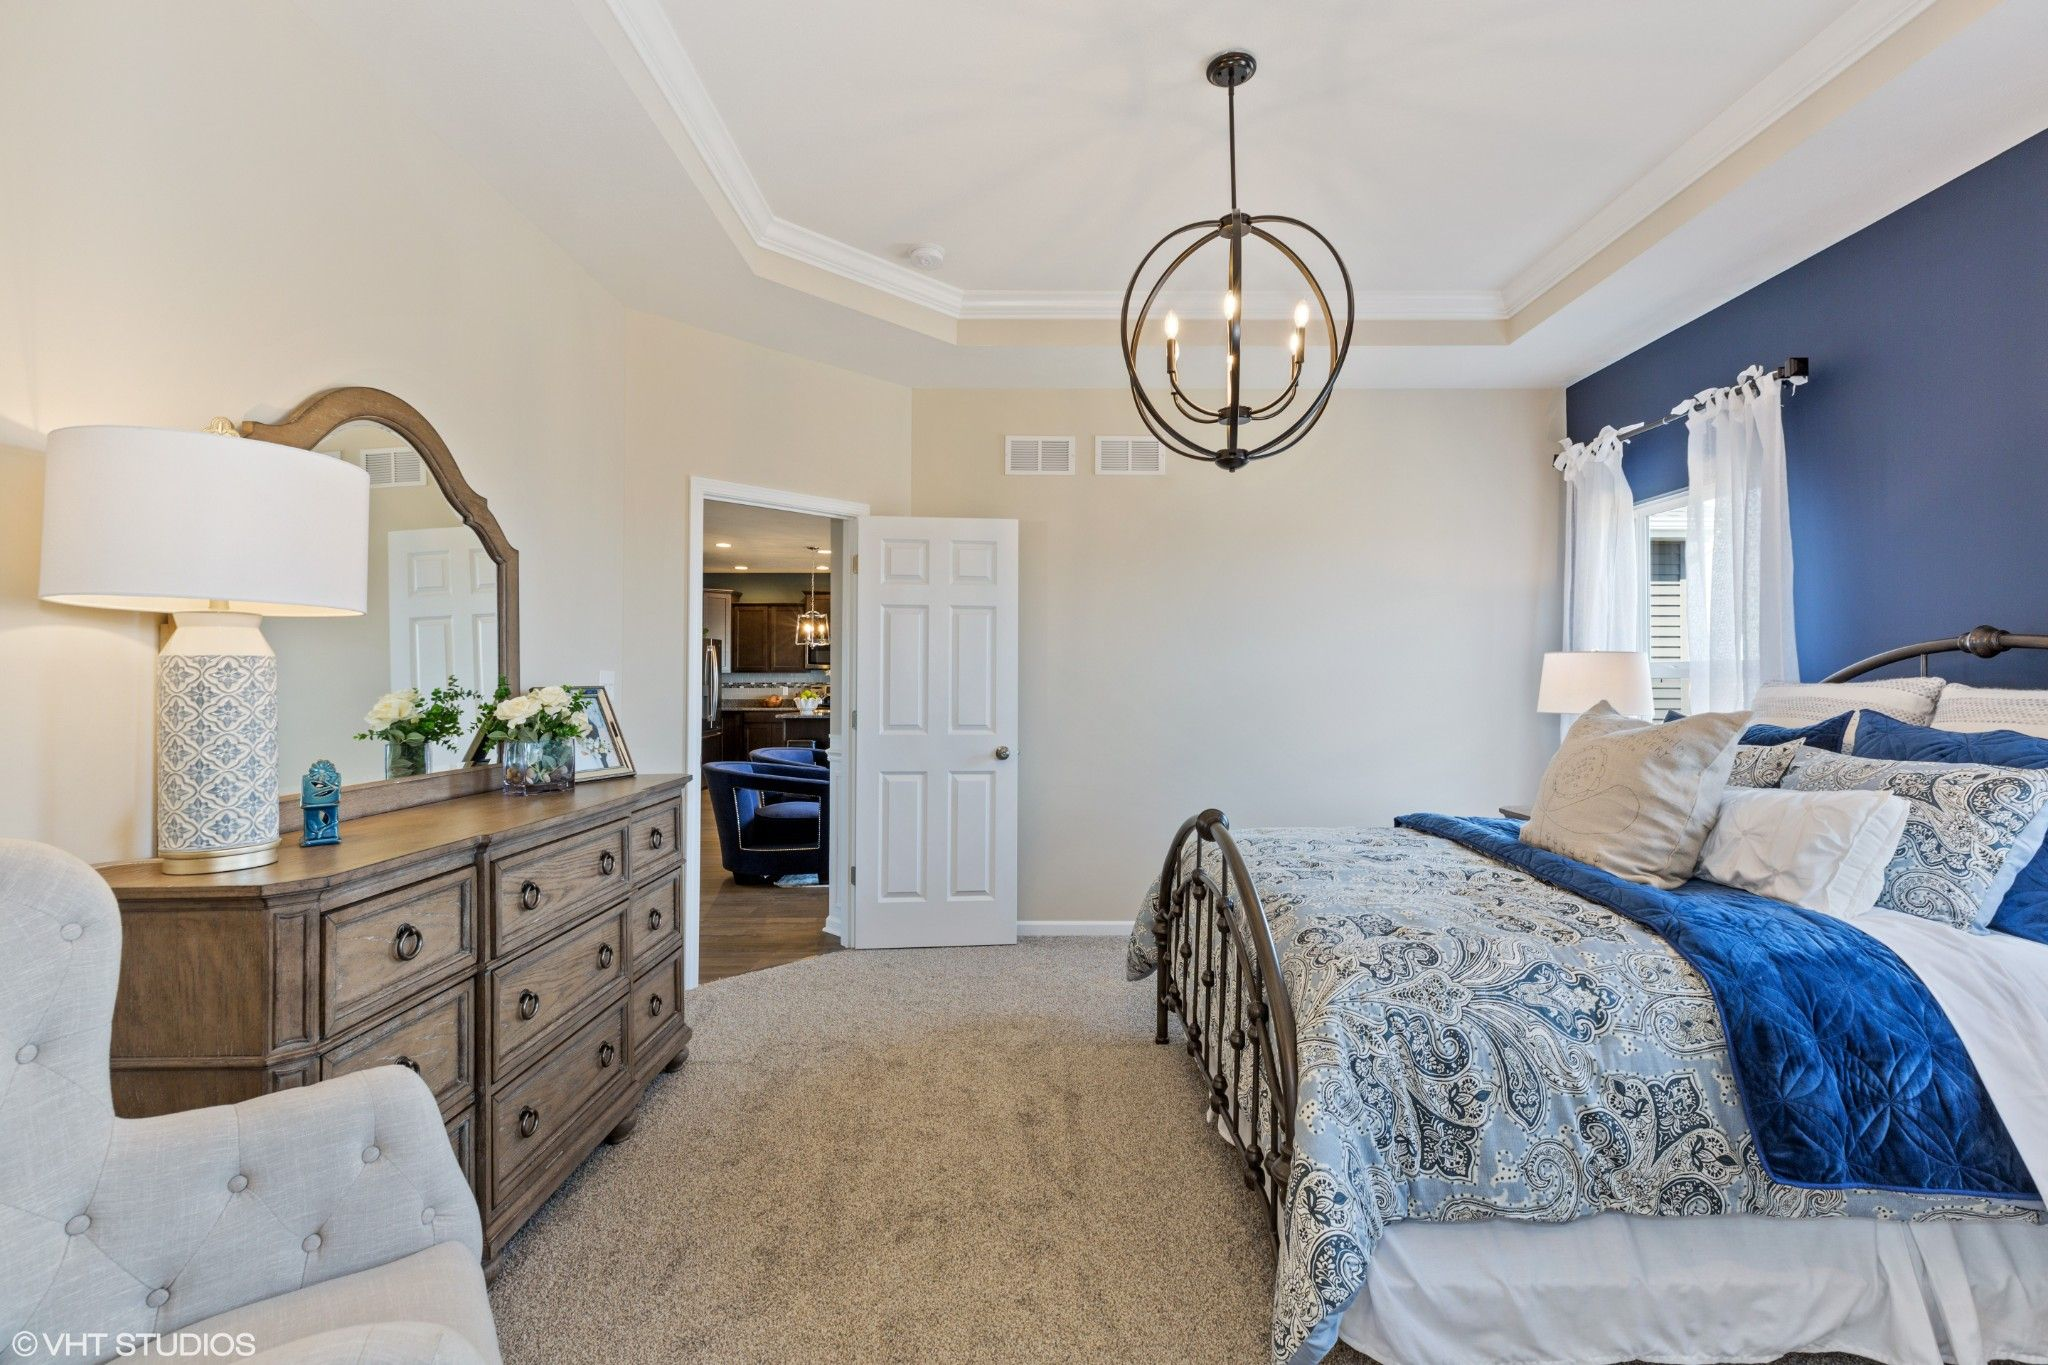 Bedroom featured in the Avalon By Olthof Homes in Gary, IN